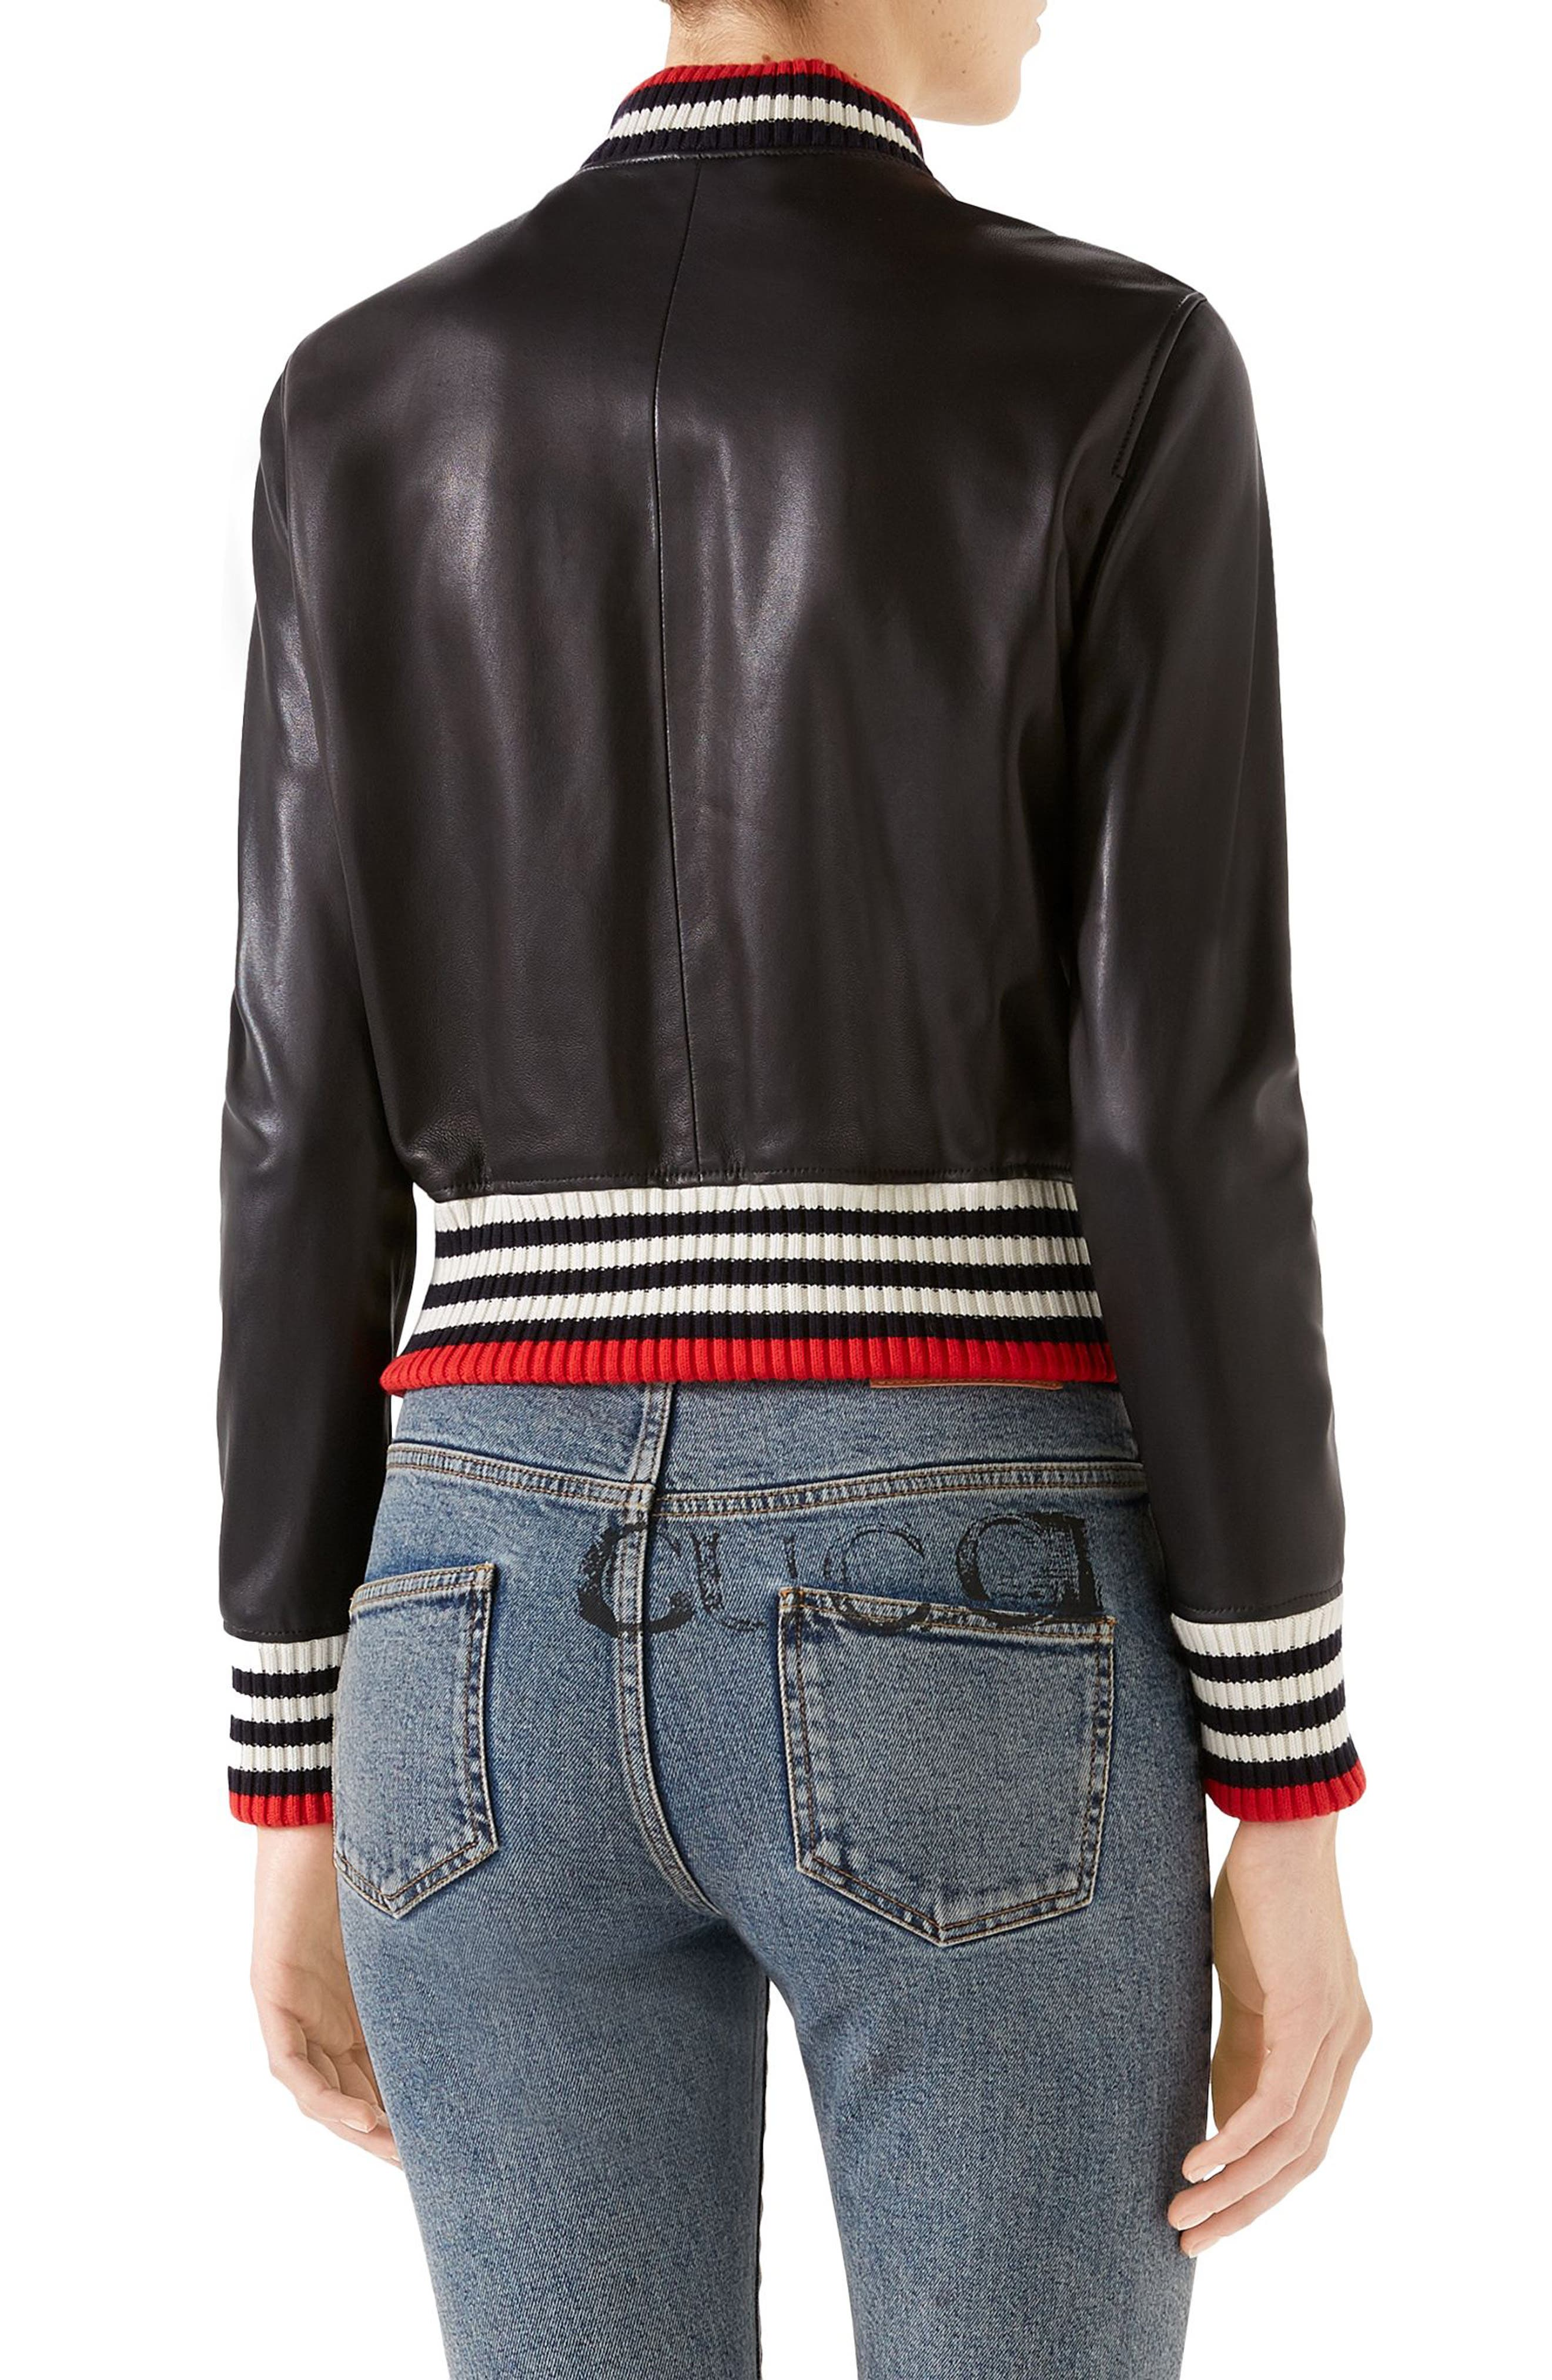 GUCCI,                             Bow Leather Bomber Jacket,                             Alternate thumbnail 2, color,                             1082 BLACK/ MULTICOLOR